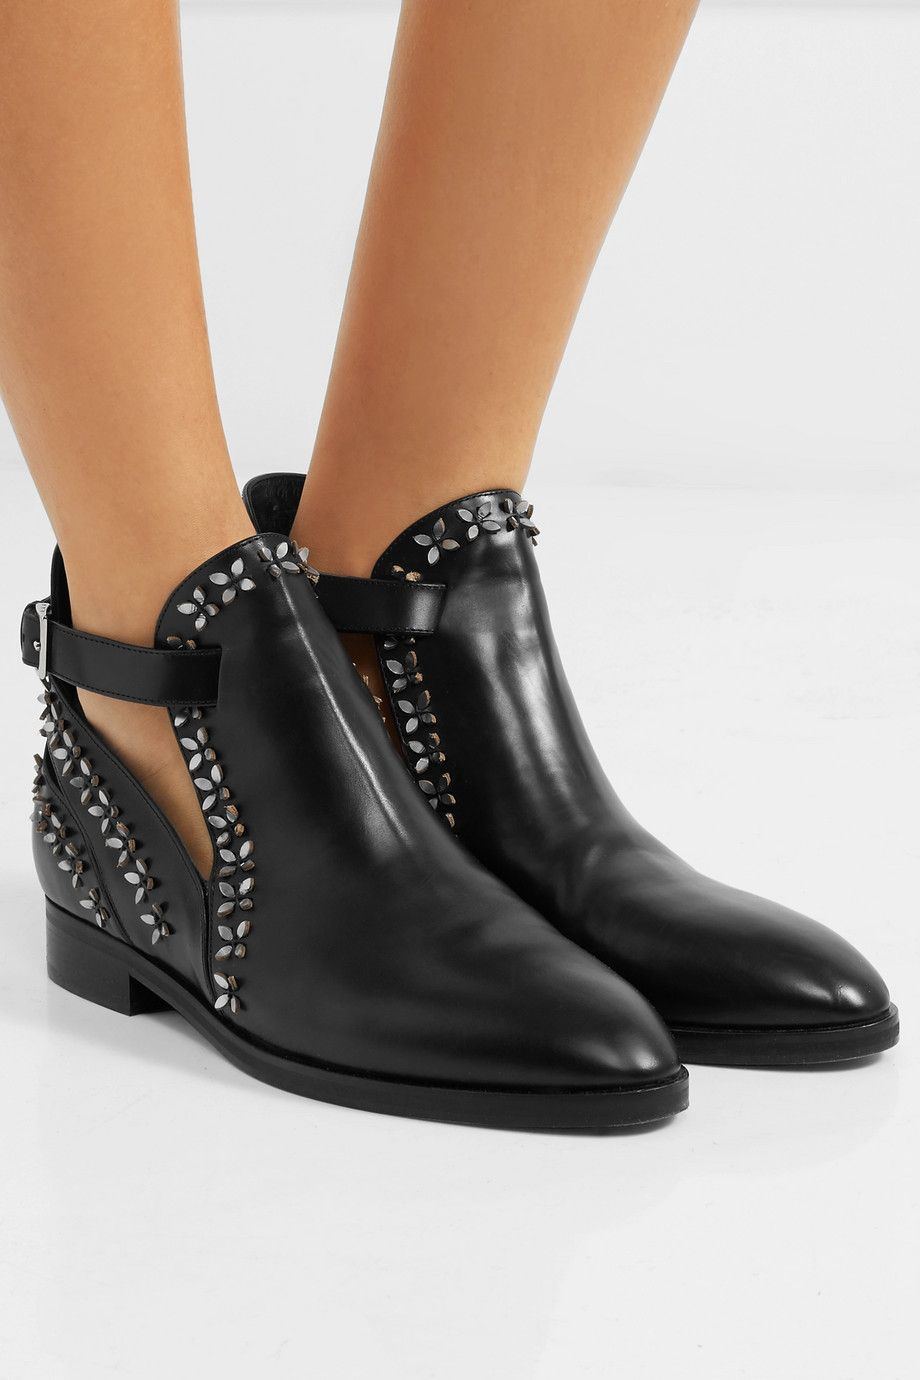 boots alaie How to Wear Flat Ankle Boots & What to Wear with Ankle Boots